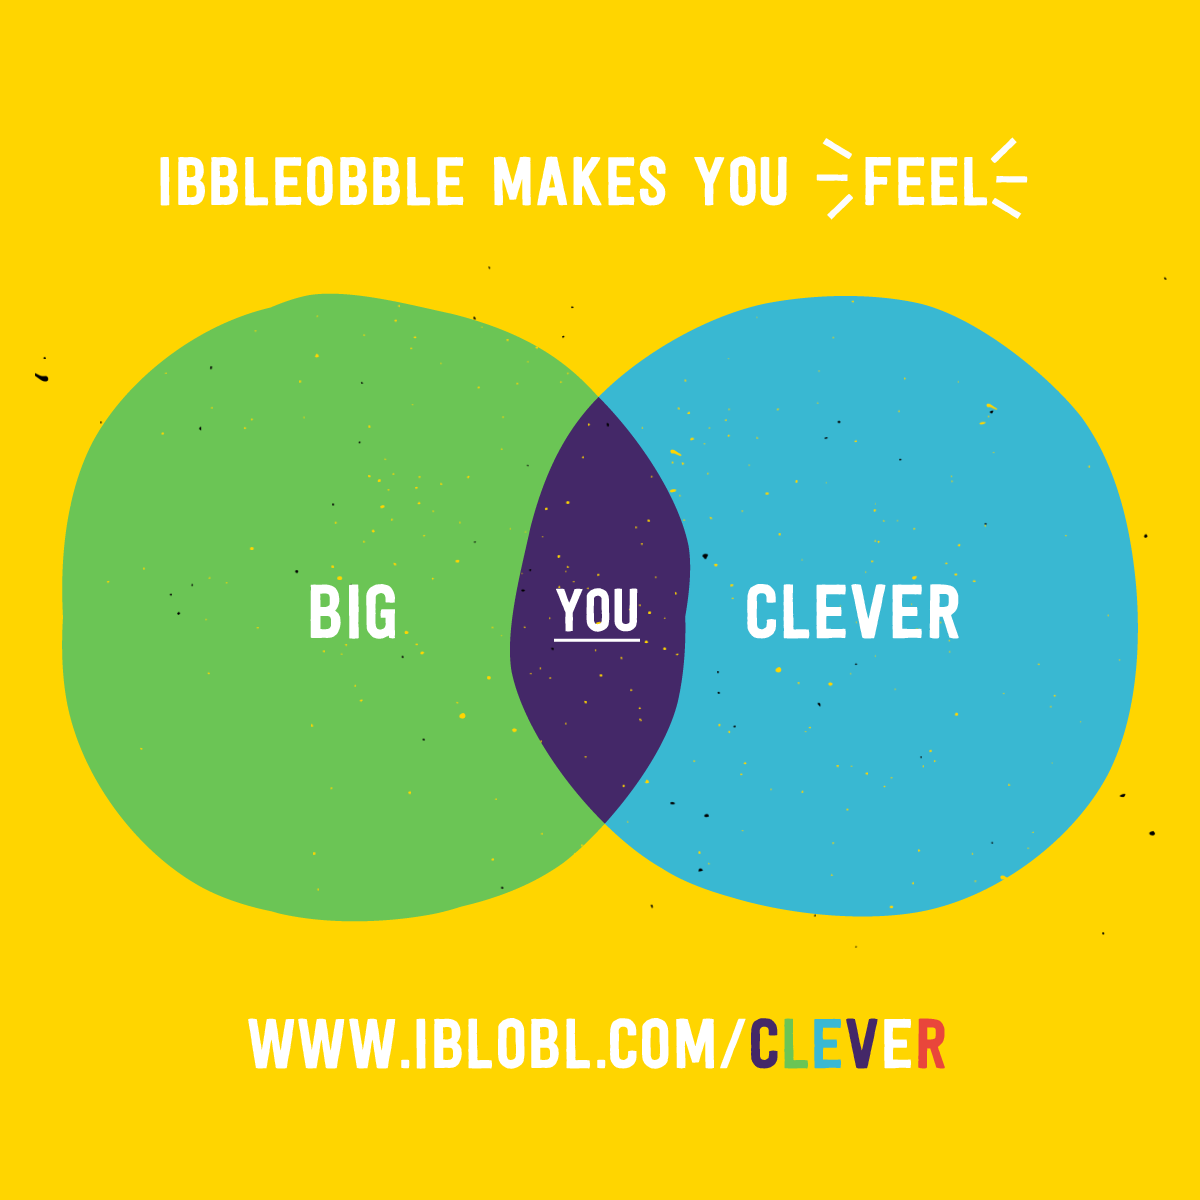 Ibbleobble makes you feel big and clever